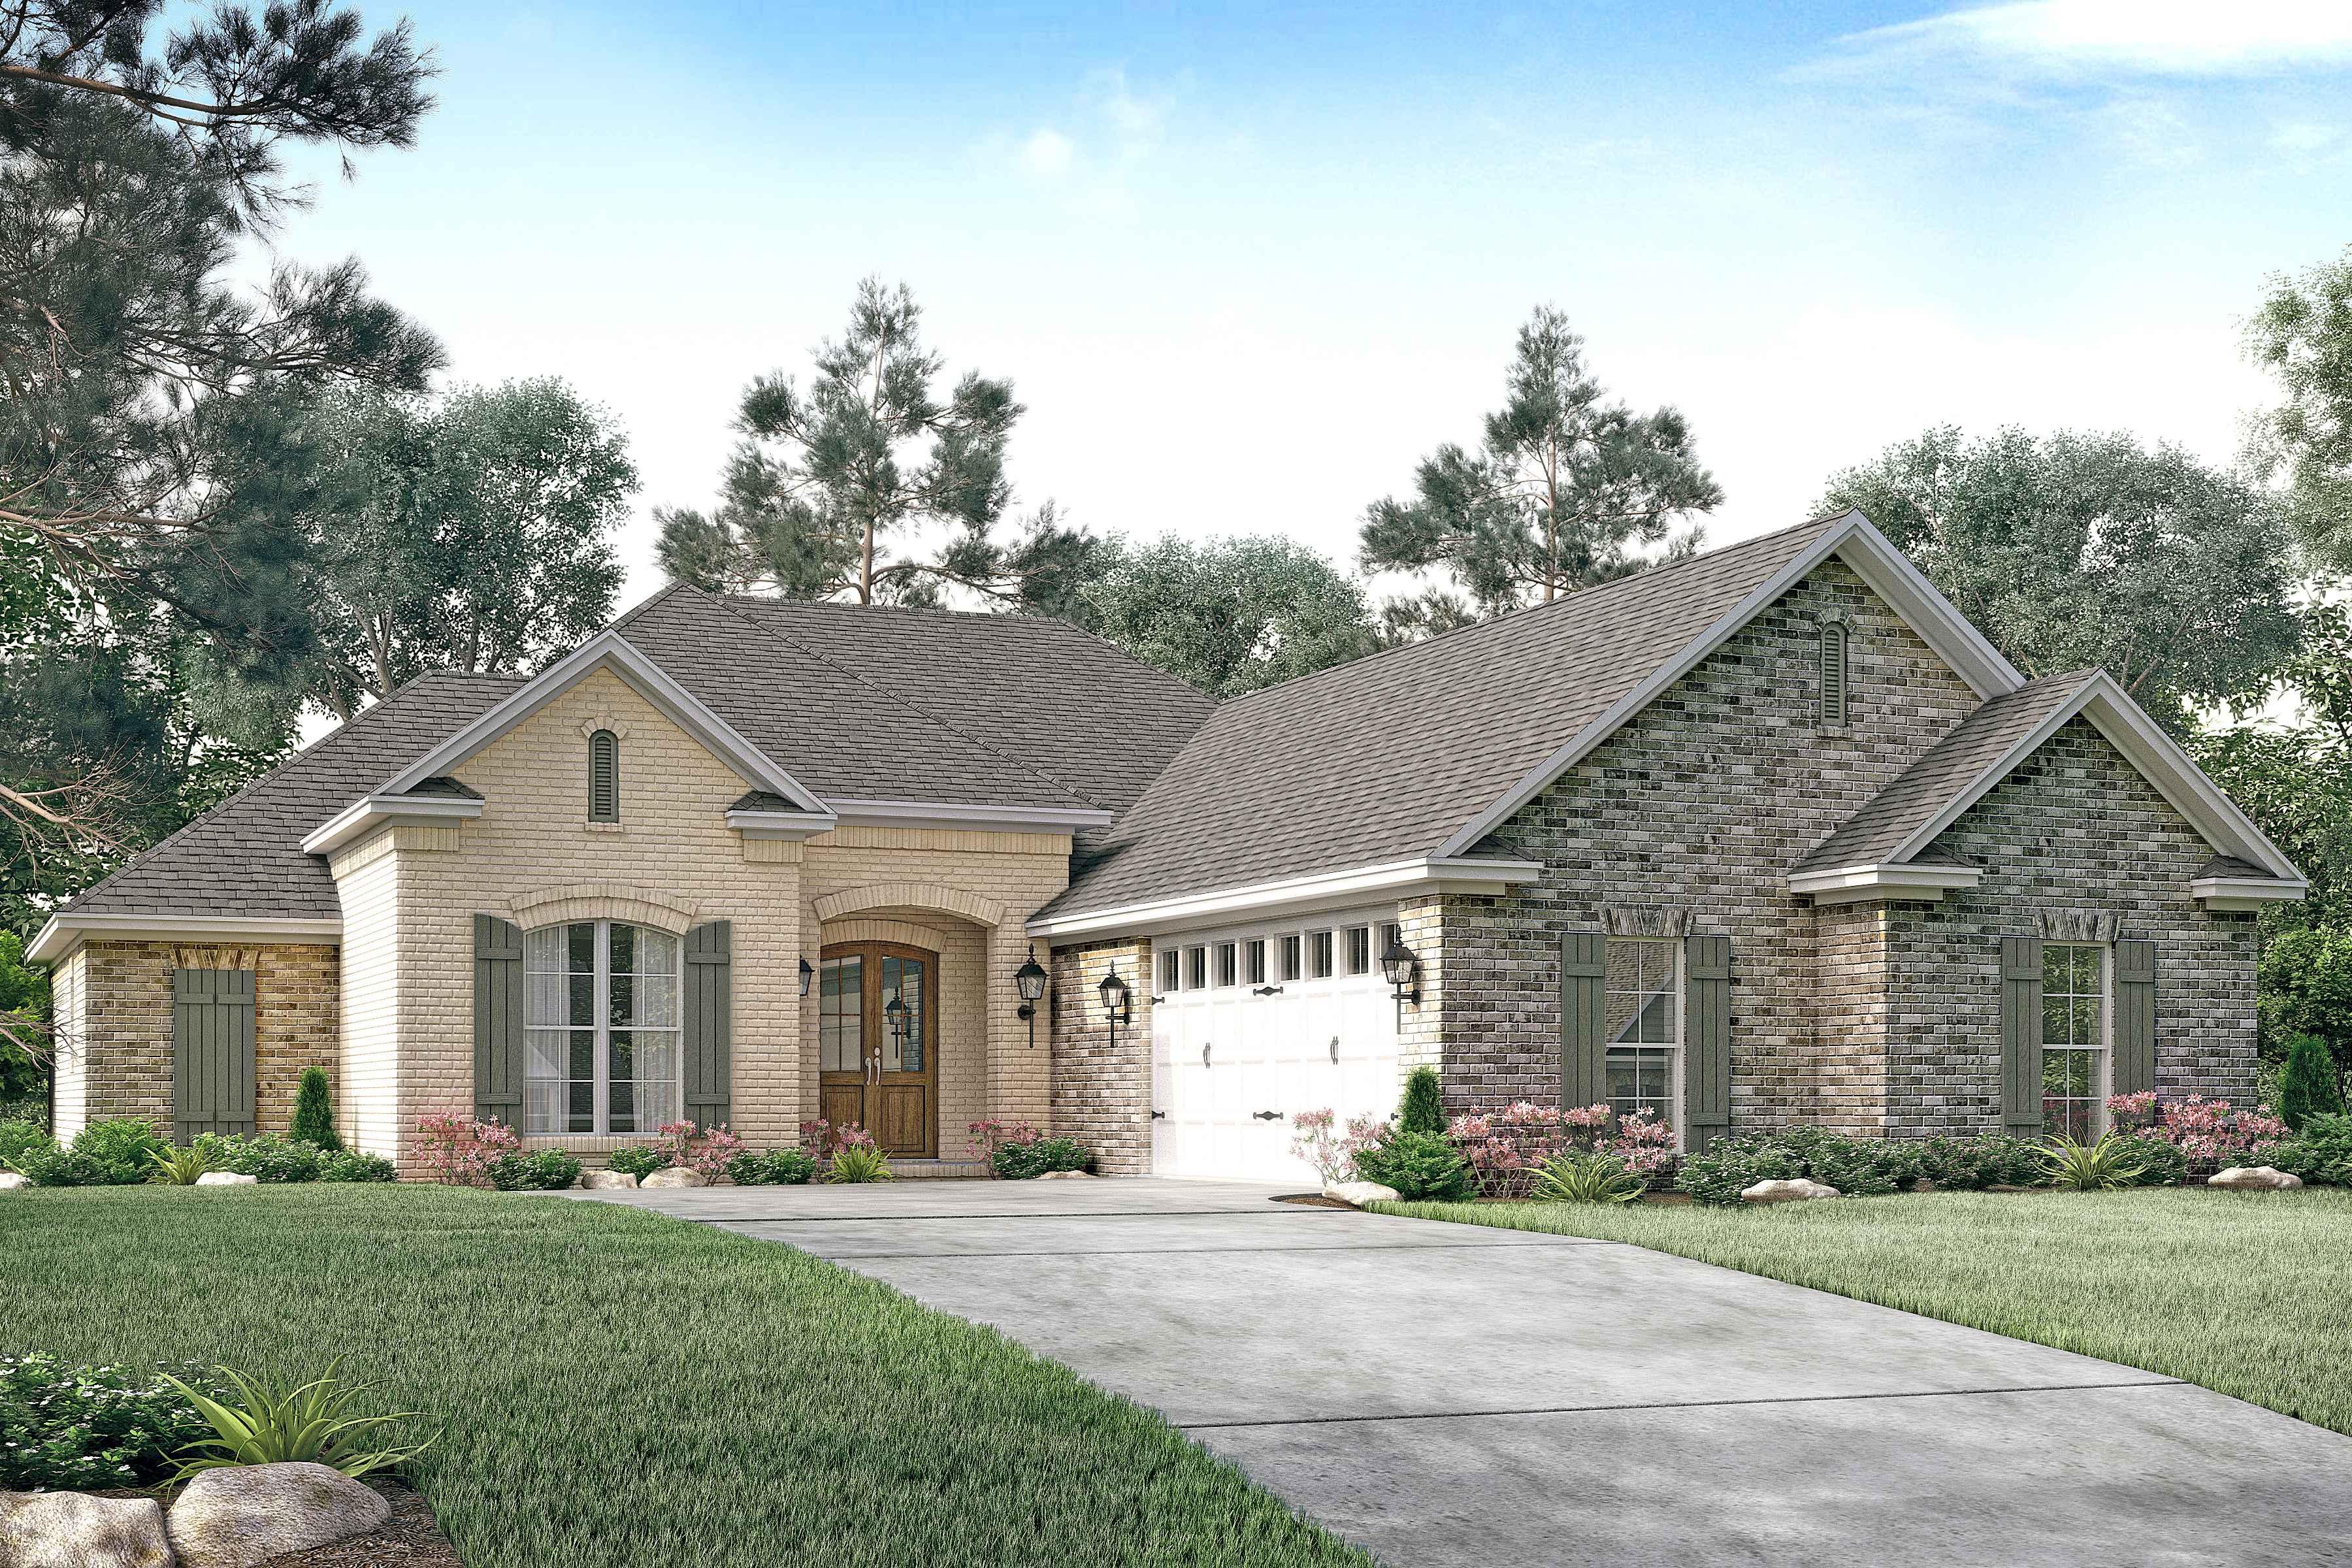 Small house plan home plan 142 -  142 1146 Front Elevation Of French Home Plan Theplancollection House Plan 142 1146